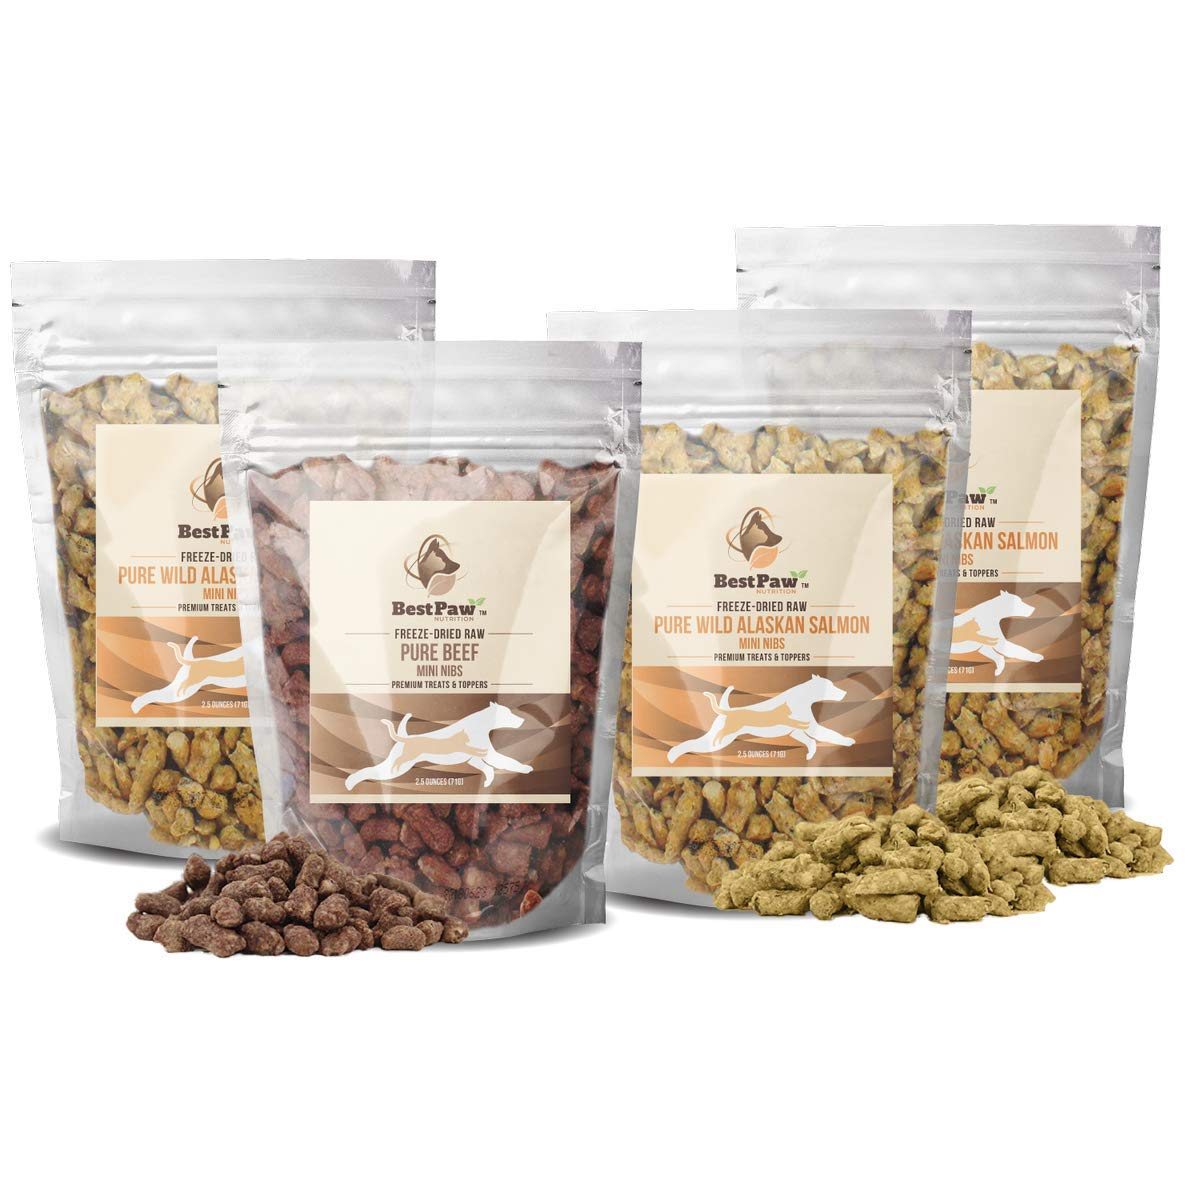 Freeze Dried Cat or Dog Food Gluten Grain Free Natural Dehydrated Raw Mixers, Treats, Meal Toppers or Entrees Pure Wild Salmon Mini Nibs High in Protein for Carnivore Pets Made in The USA Only